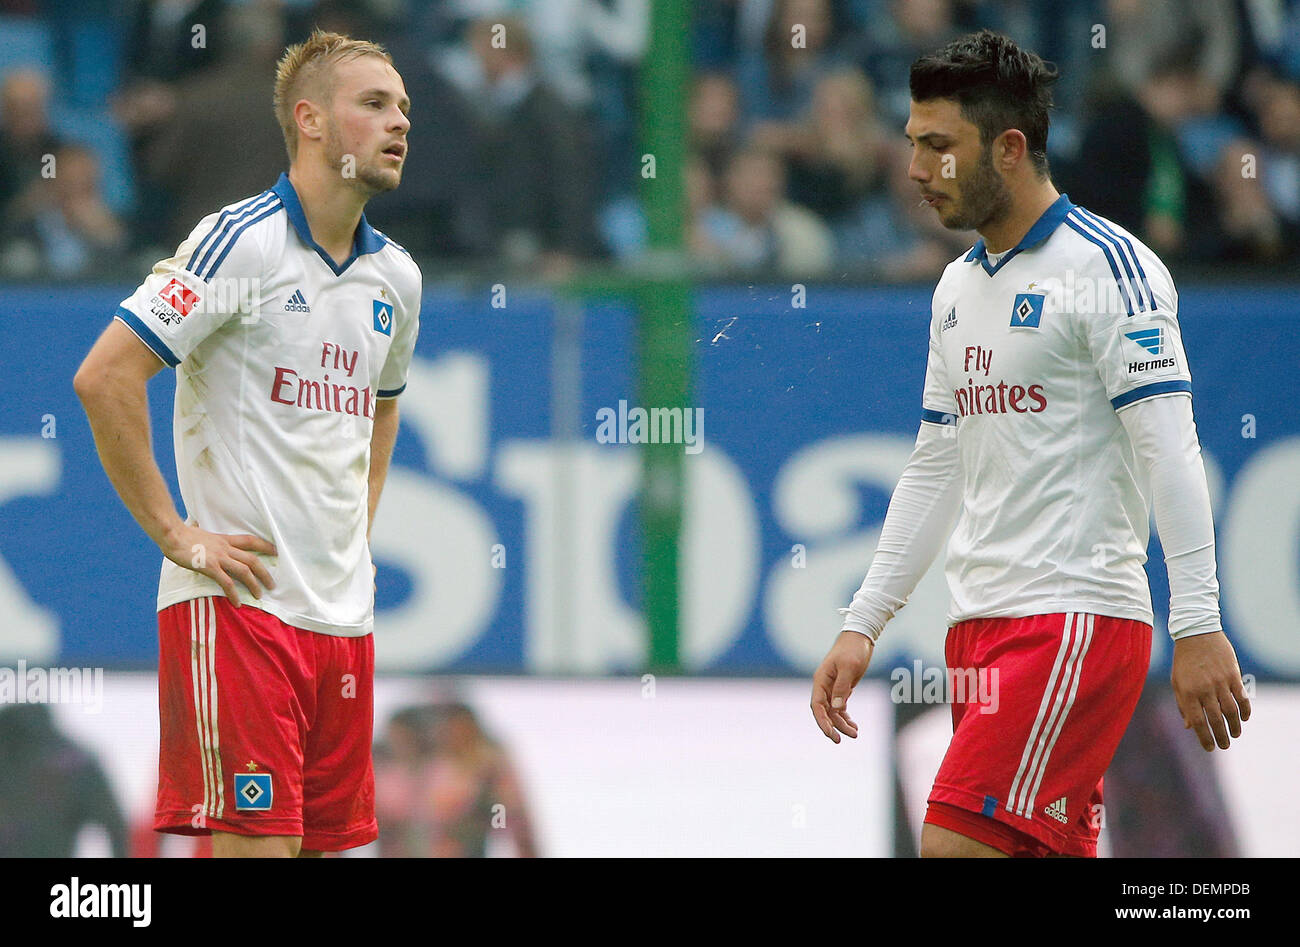 Hamburg, Germany. 21st Sep, 2013. Hamburg's Maximilian Beister (L) and Tolgay Arslan are disappointed after the Bundesliga soccer match between Hamburger SV and Werder Bremen at Imtech-Arena in Hamburg, Germany, 21 September 2013. The match ended 0-2. Photo: AXEL HEIMKEN (ATTENTION: Due to the accreditation guidelines, the DFL only permits the publication and utilisation of up to 15 pictures per match on the internet and in online media during the match.)/dpa/Alamy Live News - Stock Image